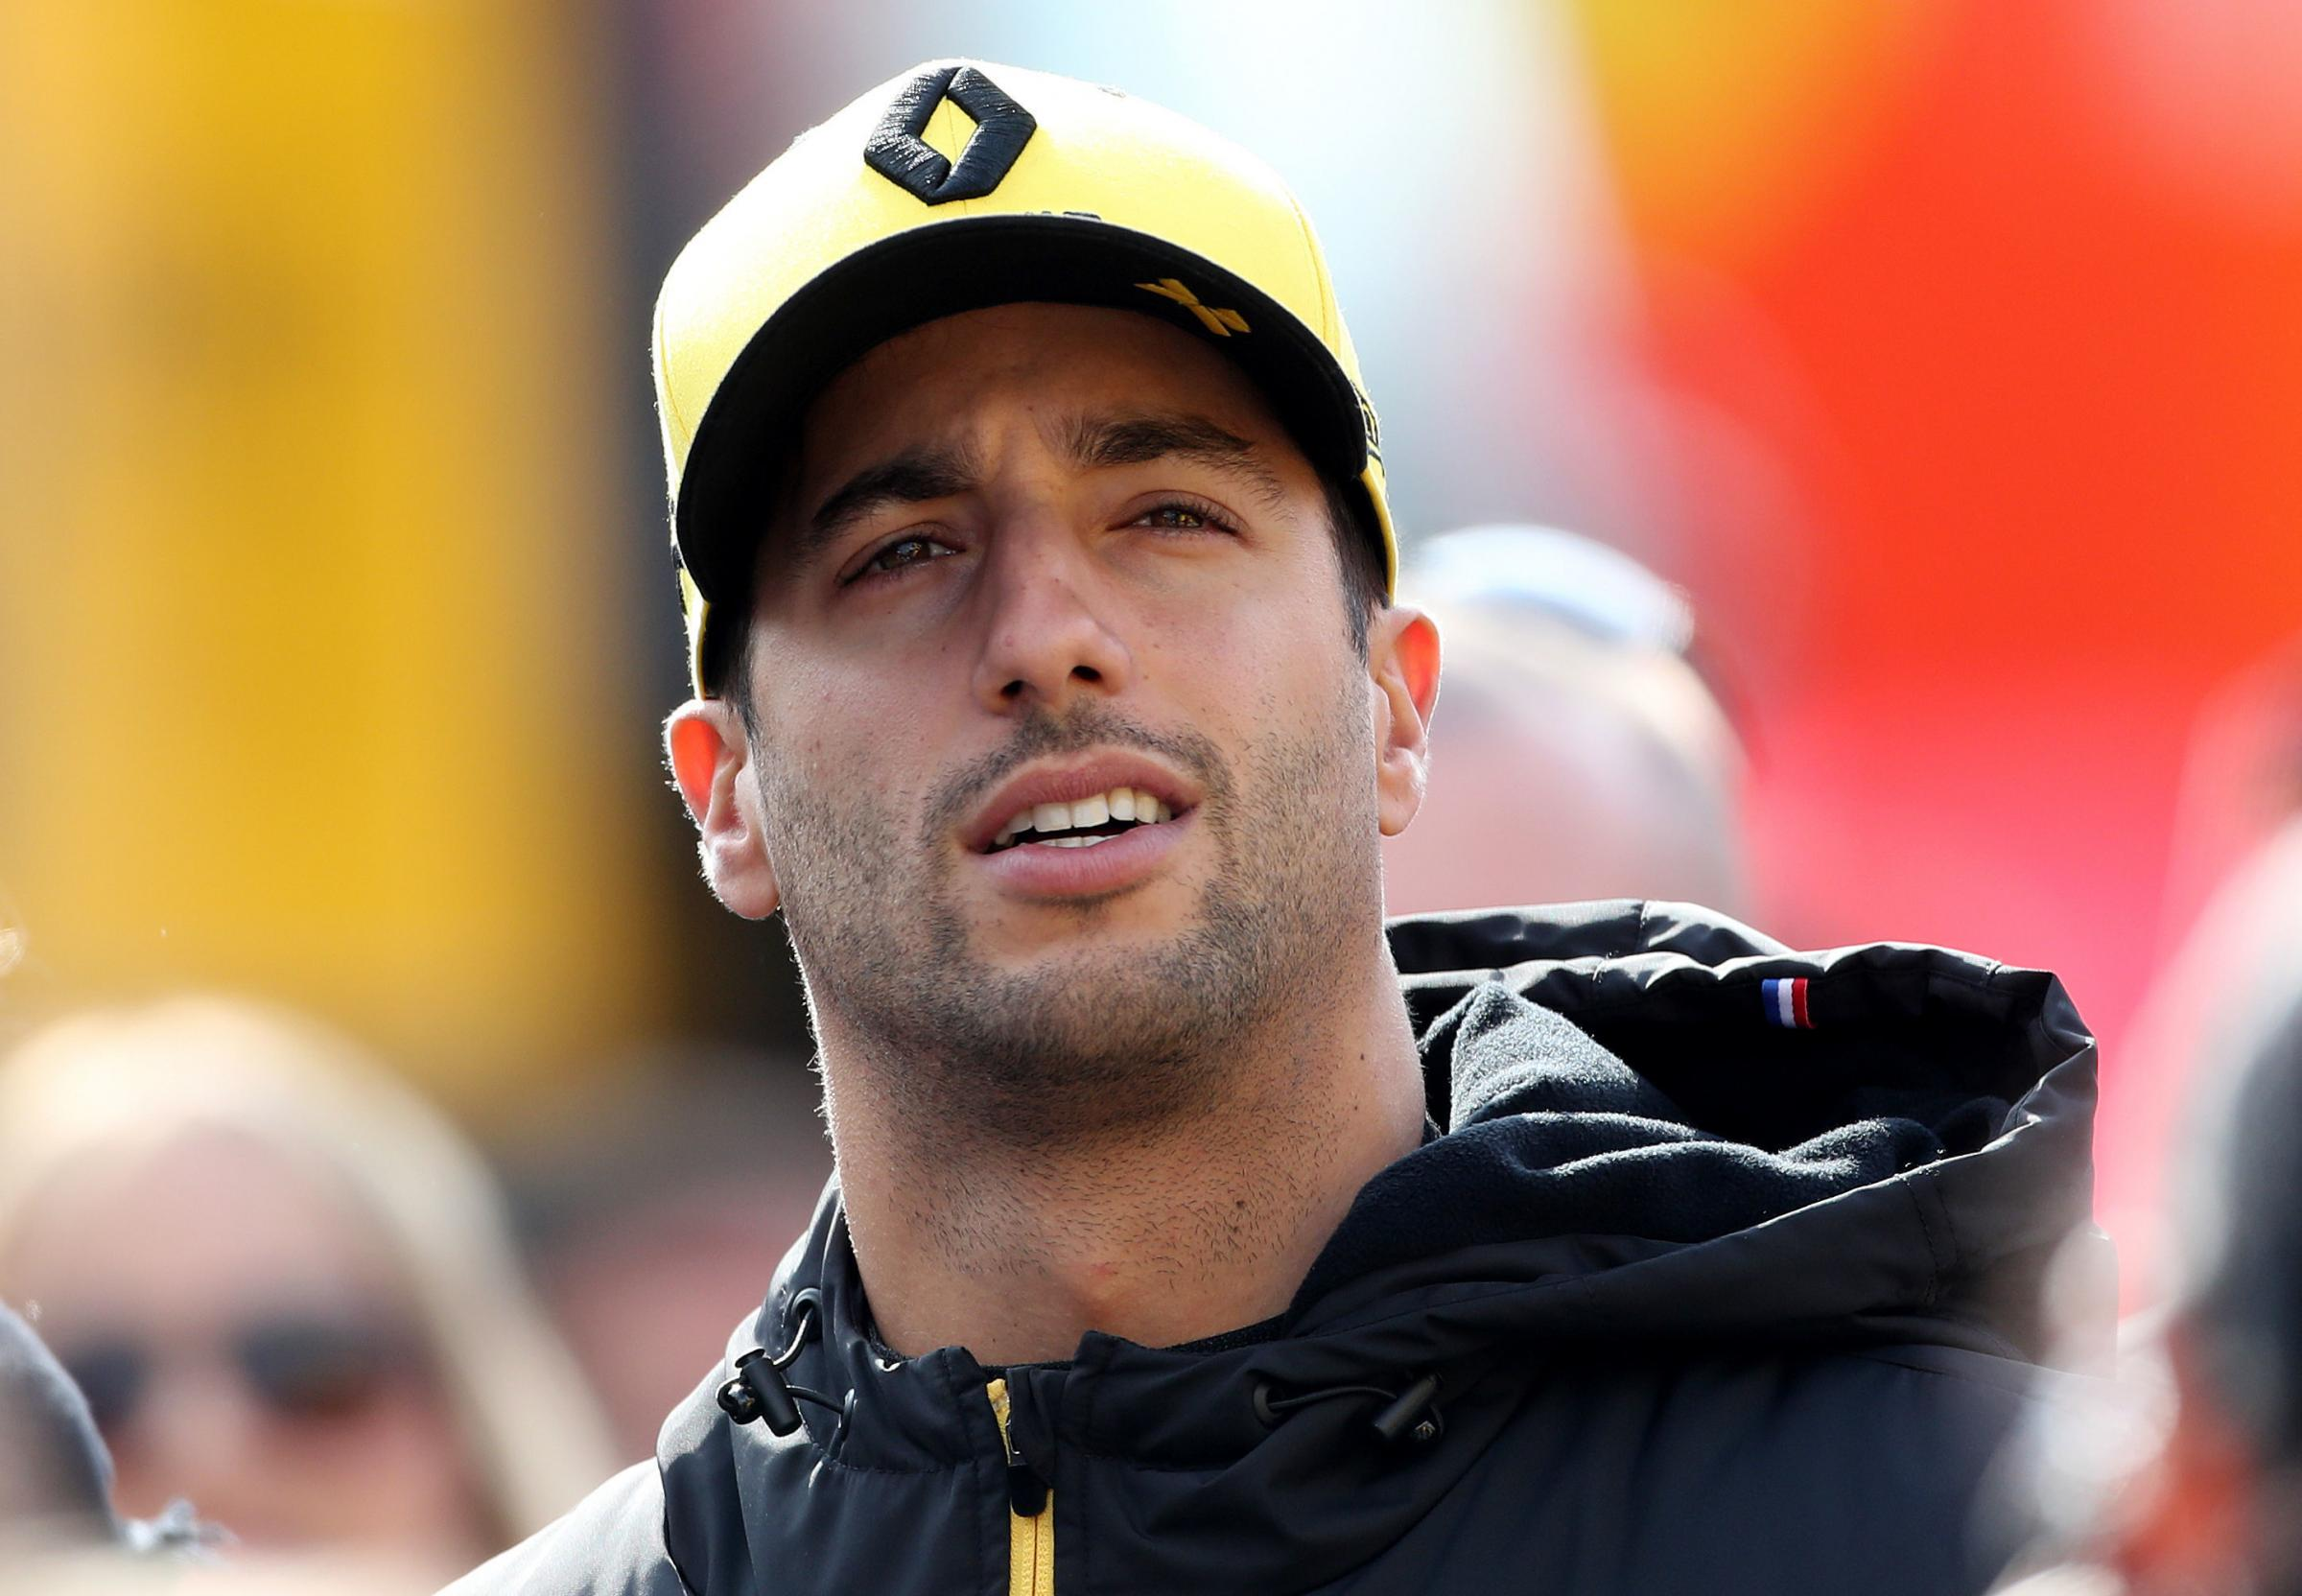 Daniel Ricciardo is excited to make his Renault debut in Australia on Sunday Picture: David Davies/PA Wire